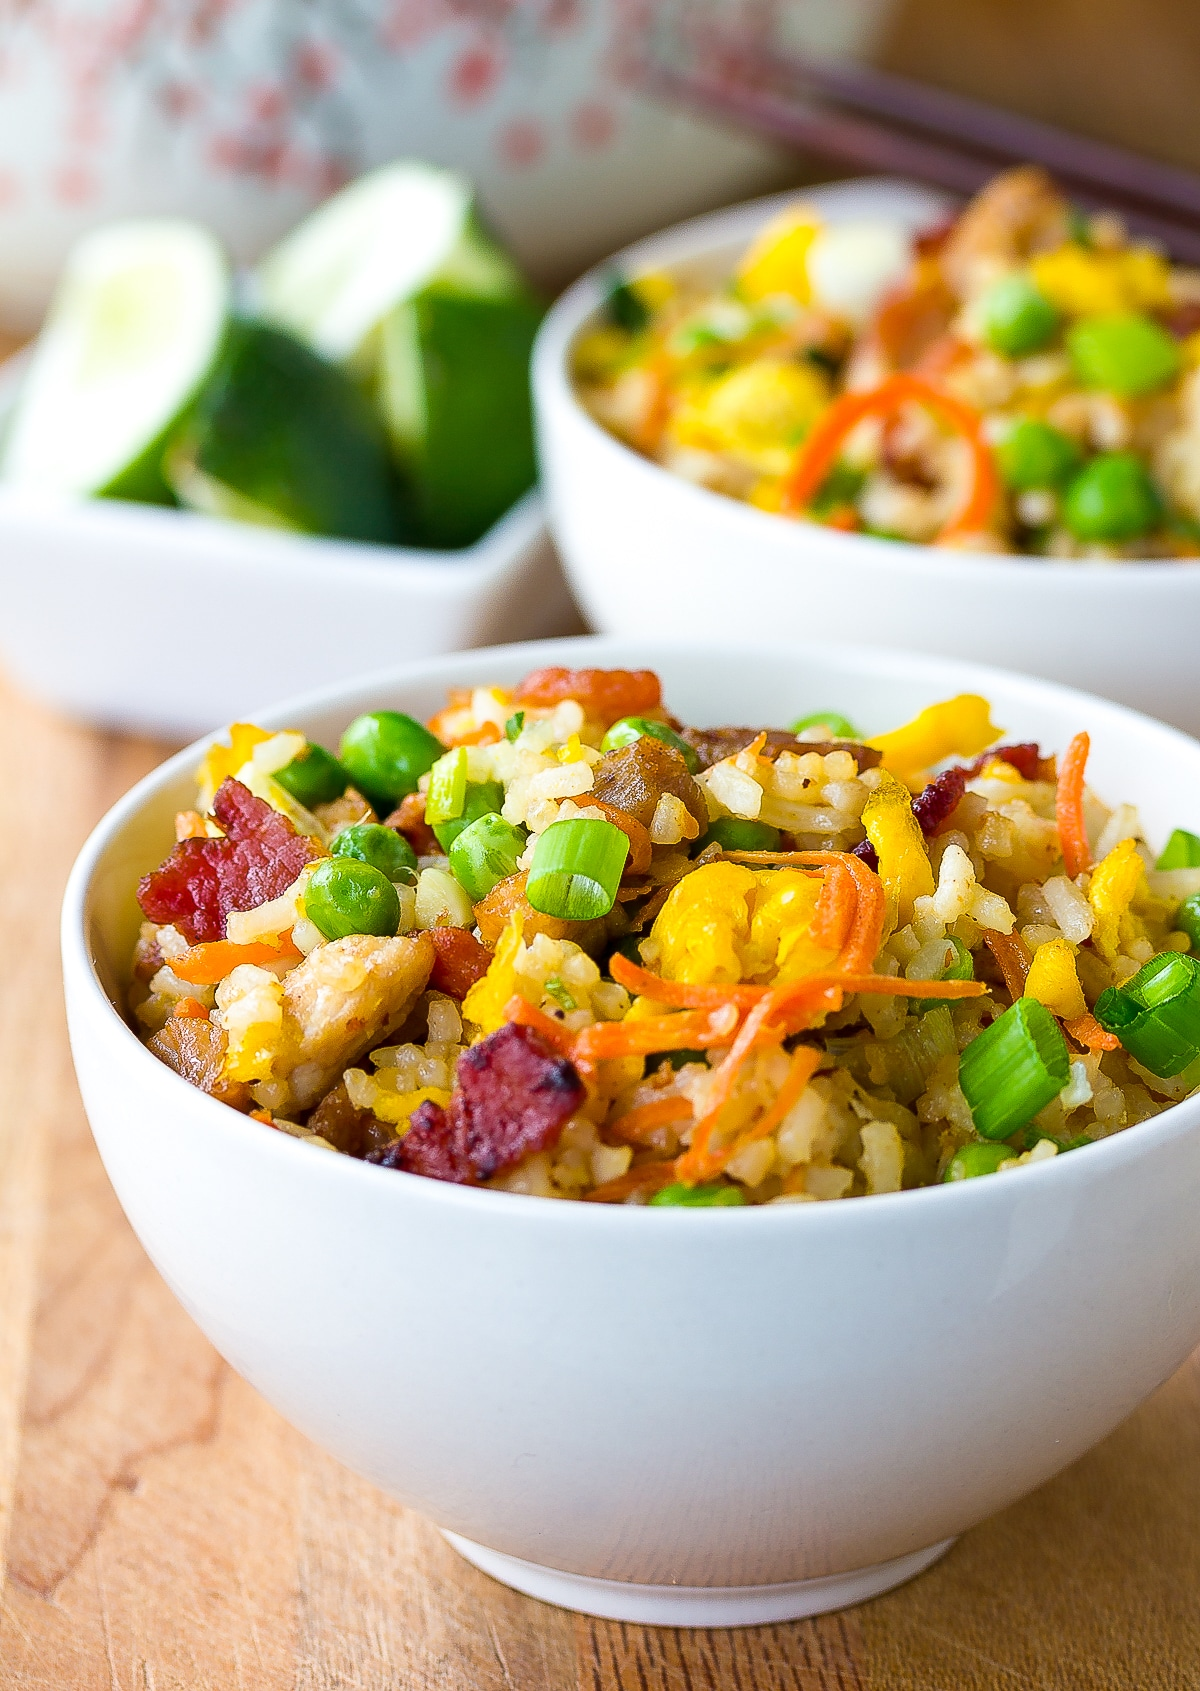 Best Pork Fried Rice Recipe #ASpicyPerspective #rice #fried #pork #bacon #asian #hawaiian